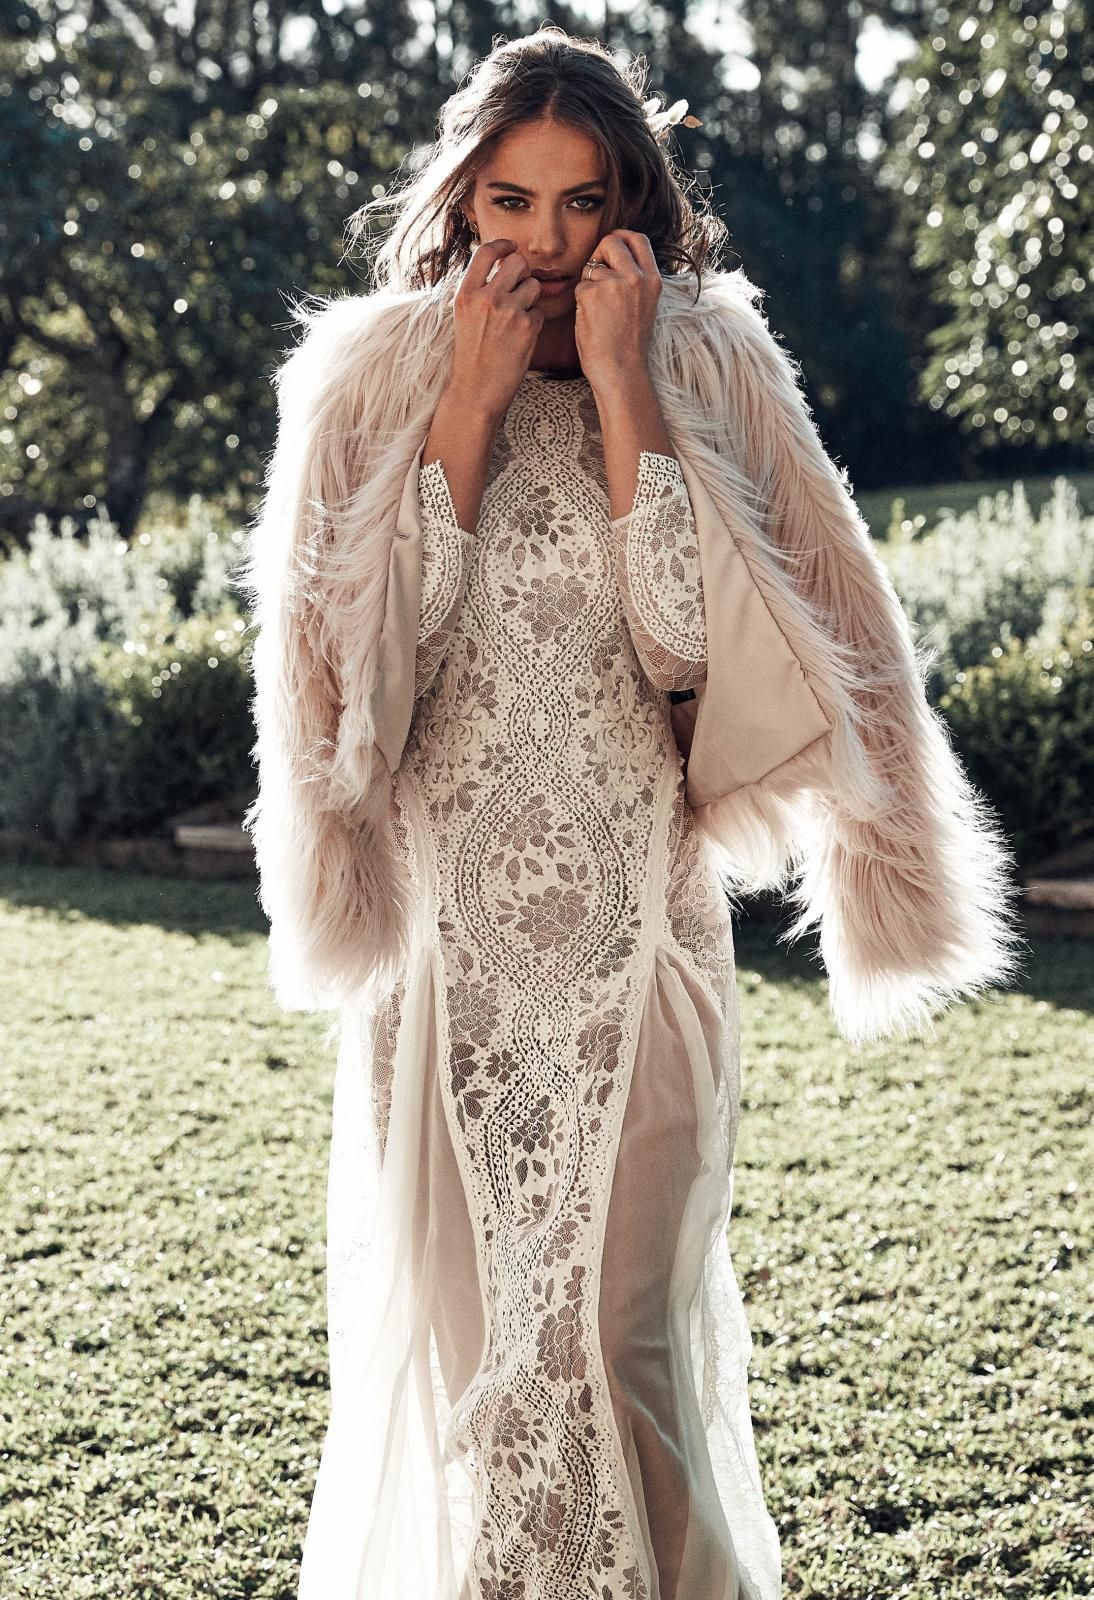 Unreal Dream Jacket Lace Wedding Capes & Robes Wedding